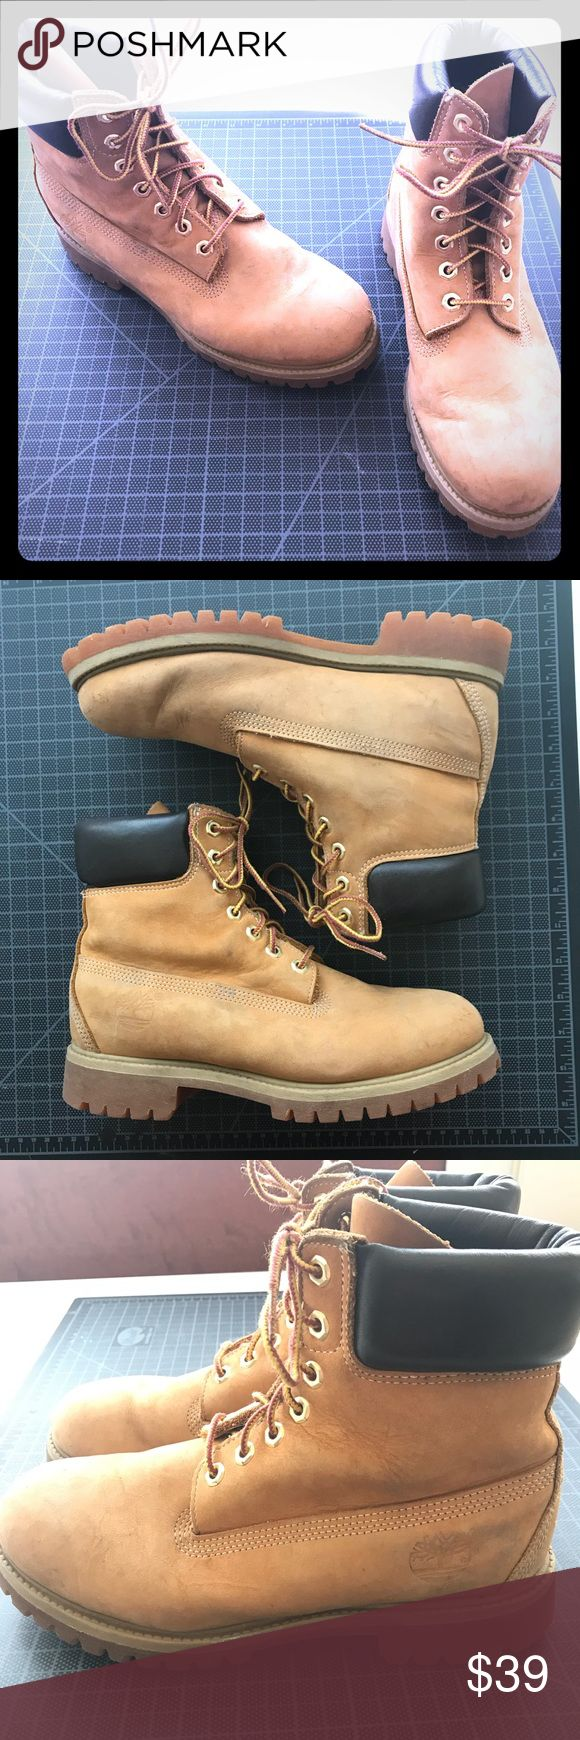 "Timberland classic boots size 8 / 8.5 Authentic timberlands classic 6"" boots. Tan/brown. Men's. The size isn't printed on the inside? But I'm a 9 and these are a bit too small for me. They fit on my foot, but are too tight with thick socks. So I'd say they are between an 8 and 8.5. Signs of normal wear; some scuffs. Soles are in excellent condition Timberland Shoes Lace Up Boots"